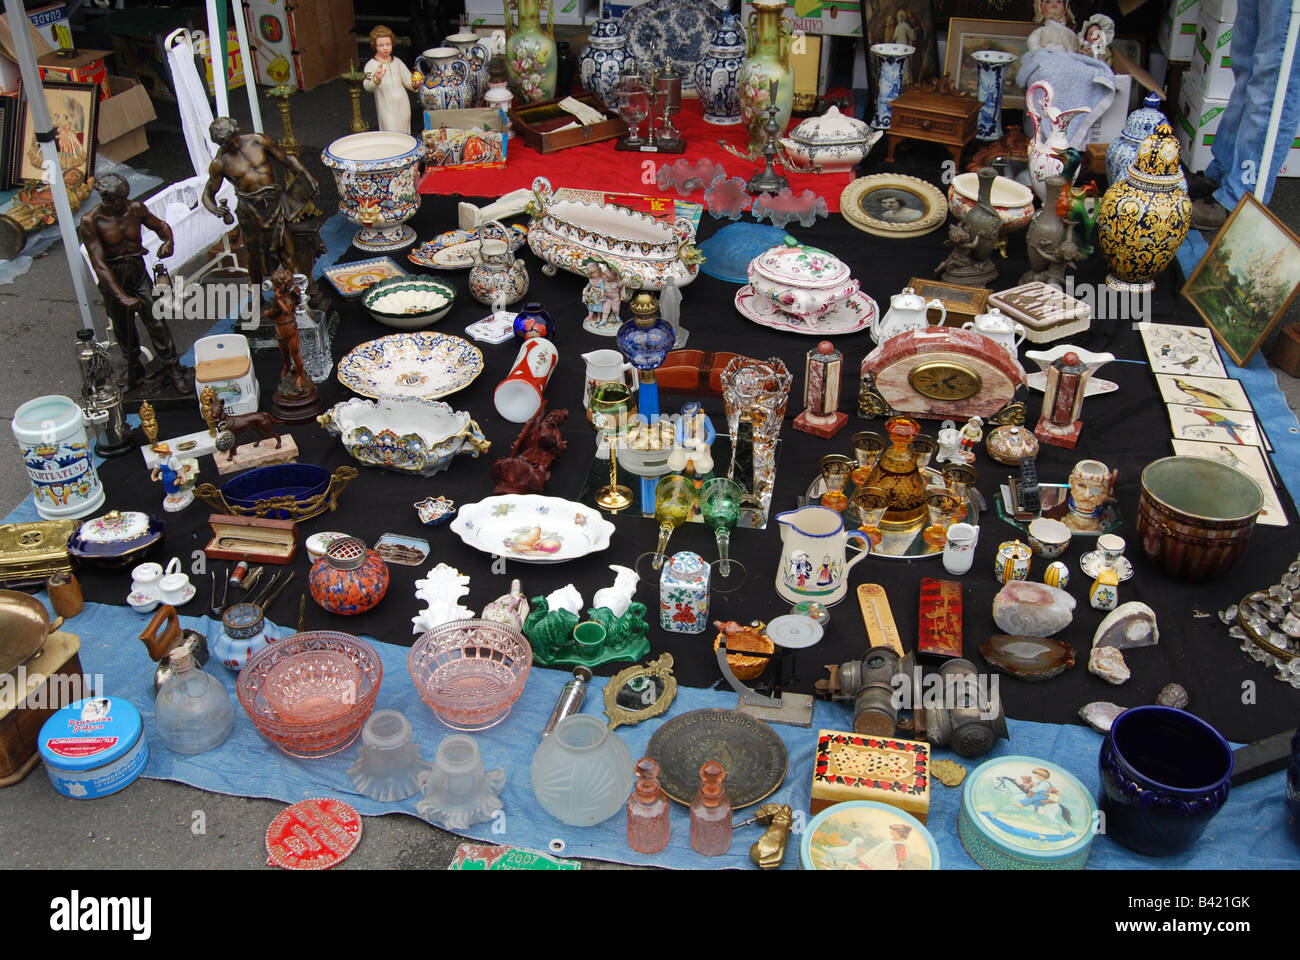 Lille Braderie Stock Photos & Lille Braderie Stock Images - Alamy